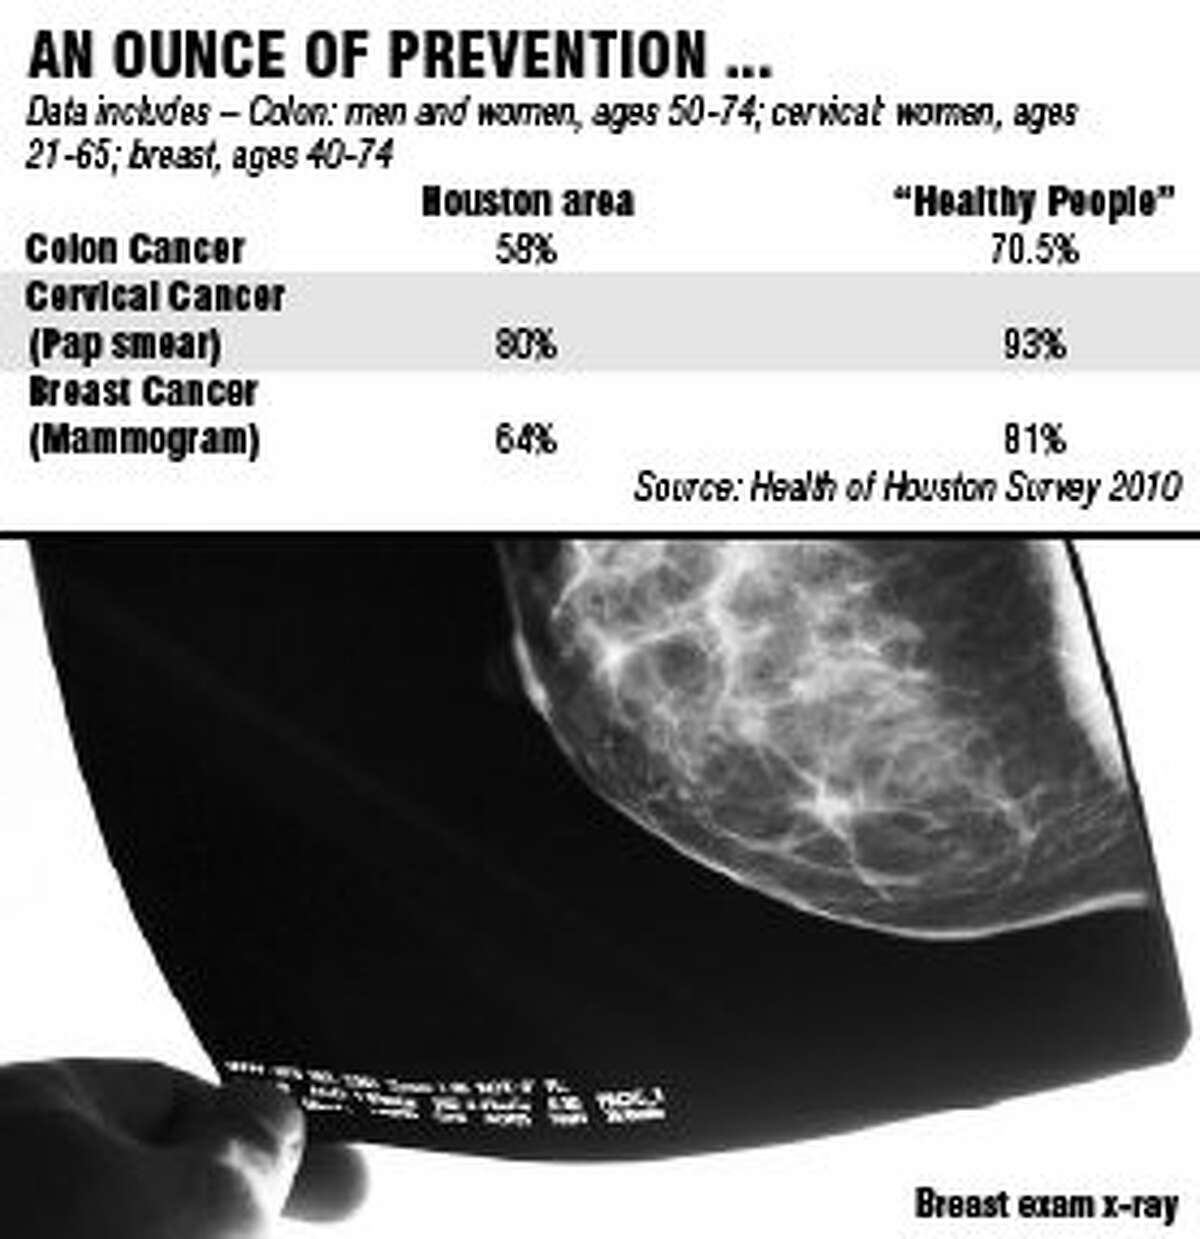 Houston area well below recommended cancer screening levels